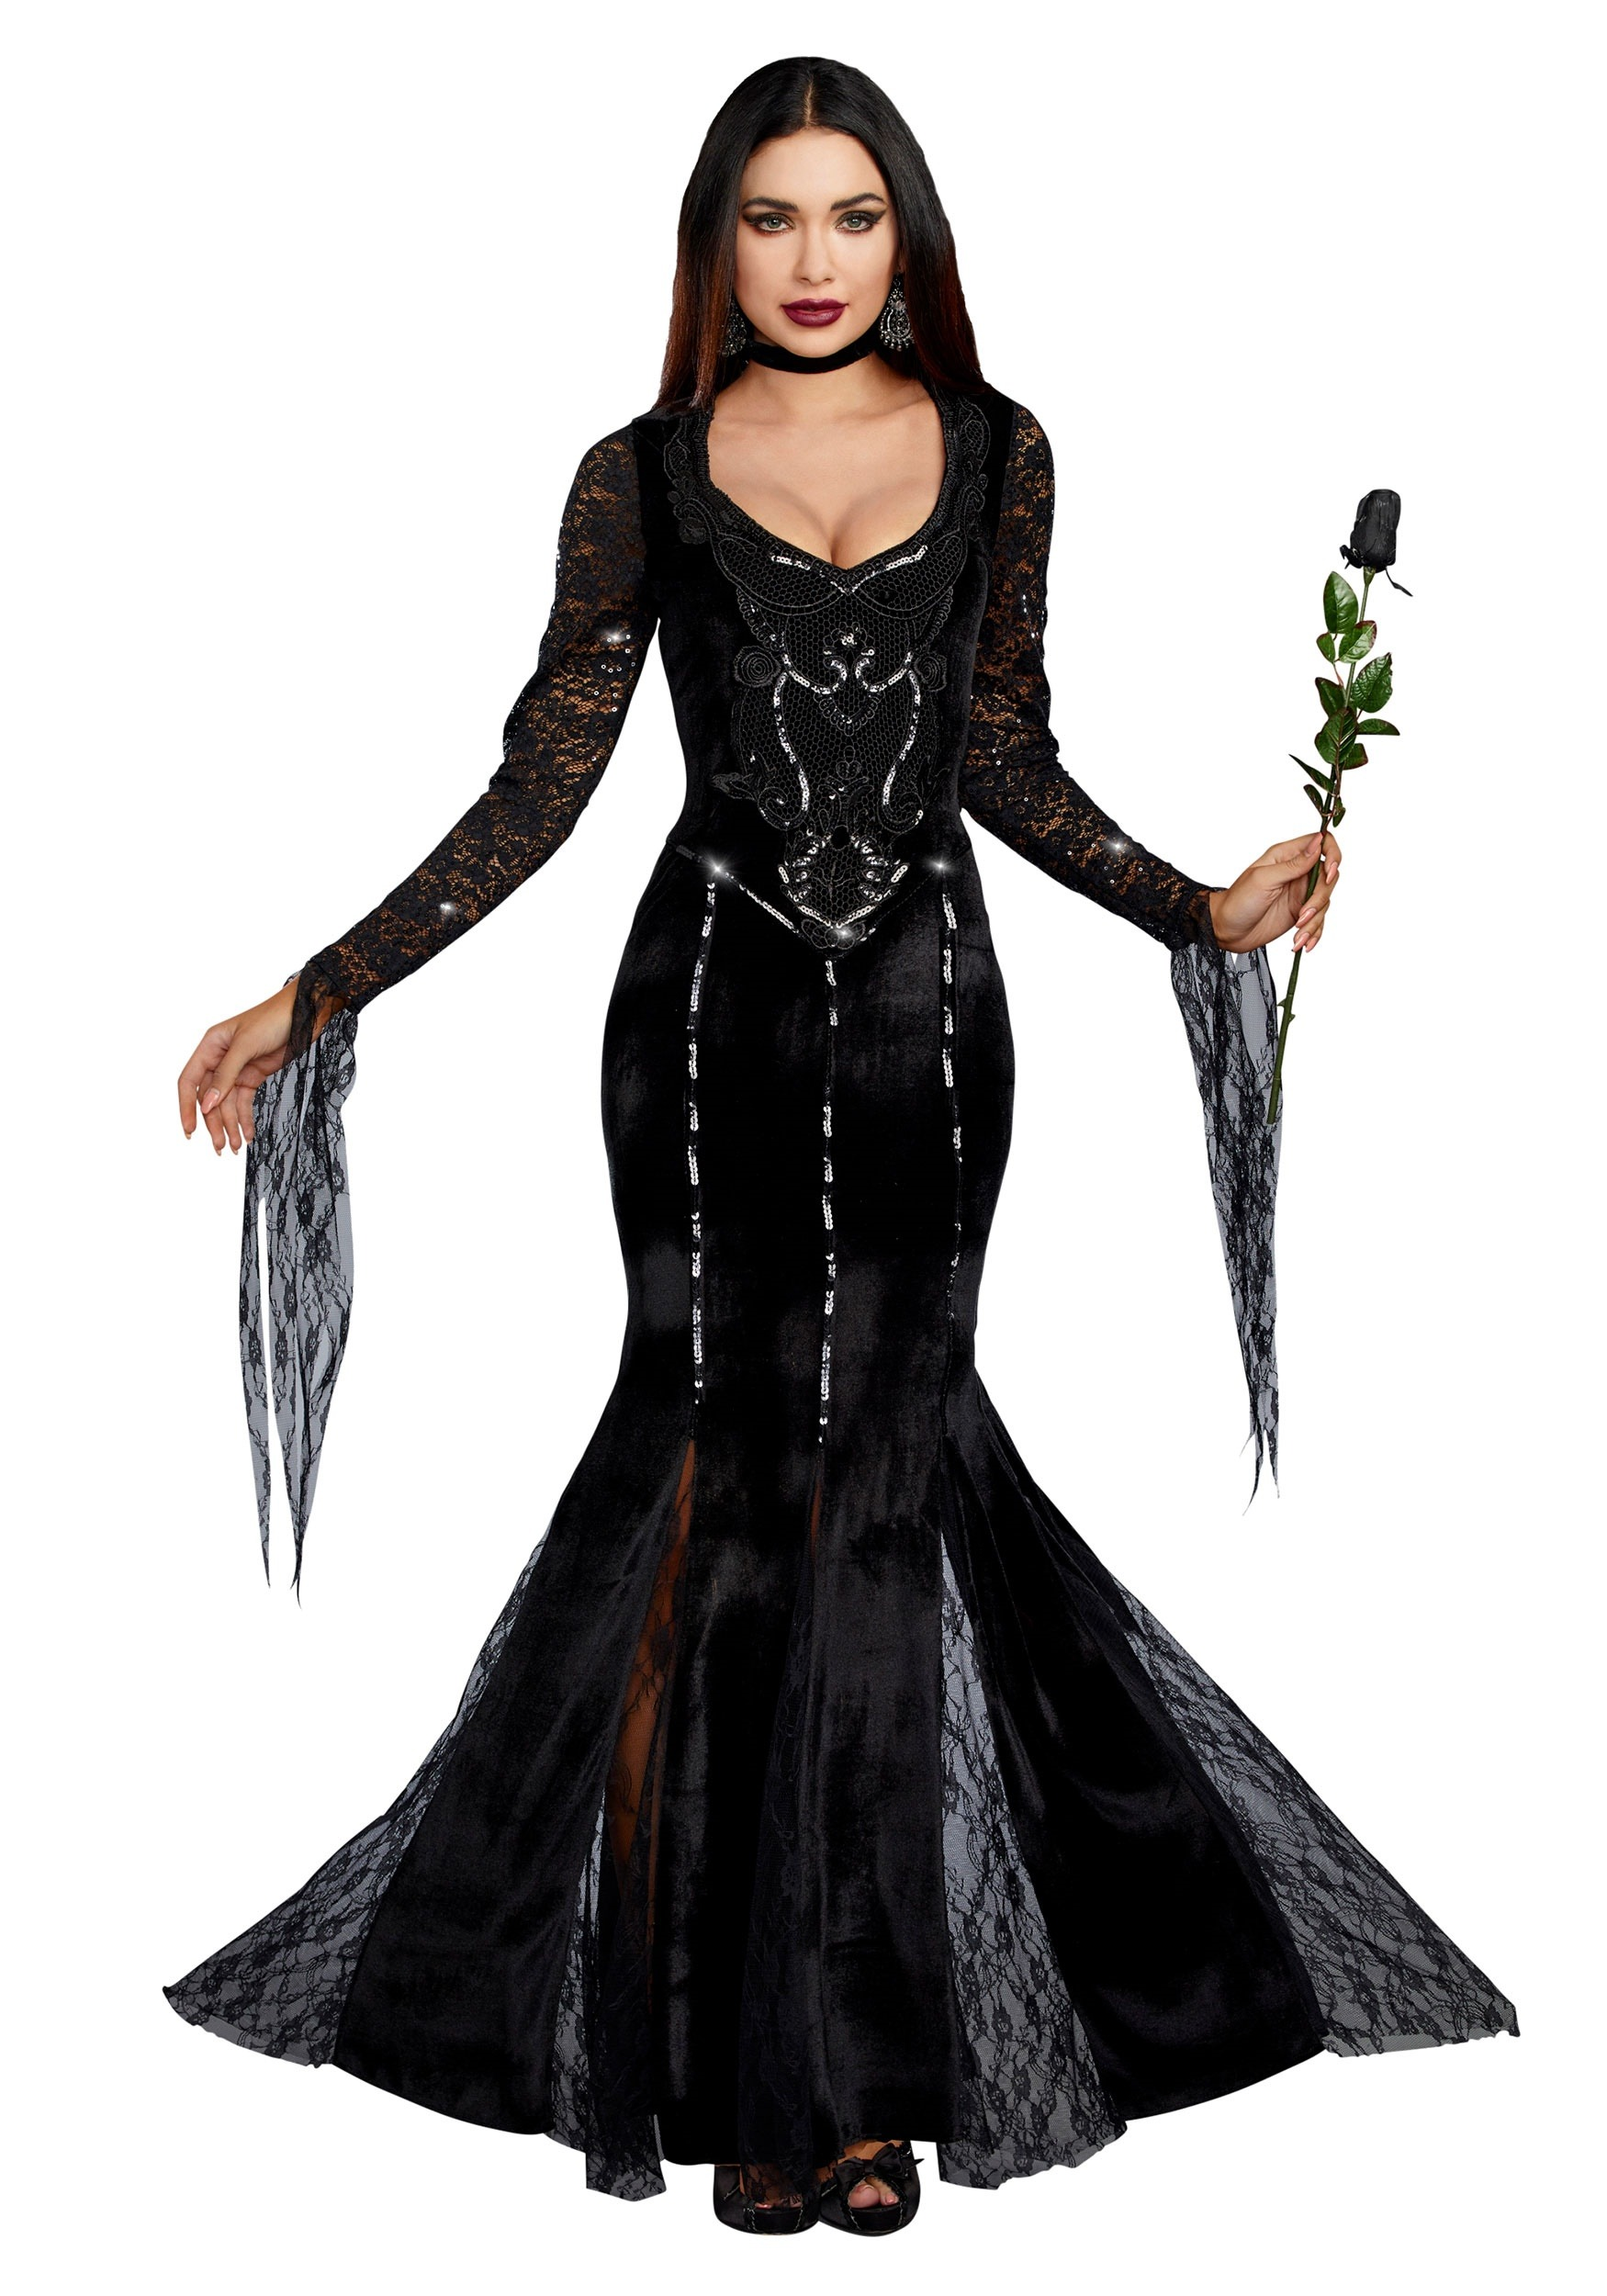 1cd1b630b0dce Women's Vampire Costumes - Adult Woman Vampire Costume